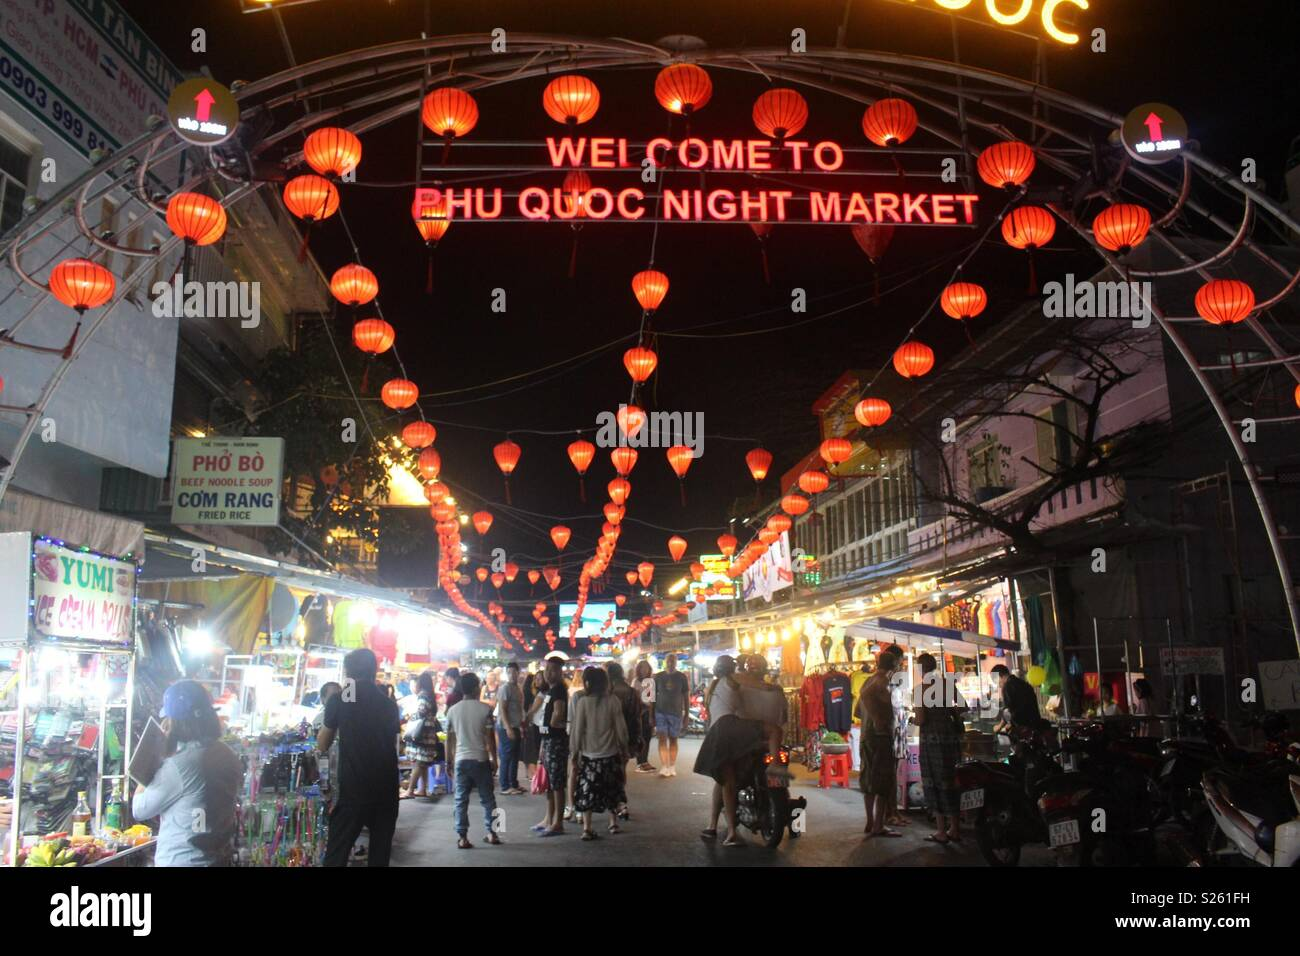 Welcome to Phu quoc night market sign - Stock Image